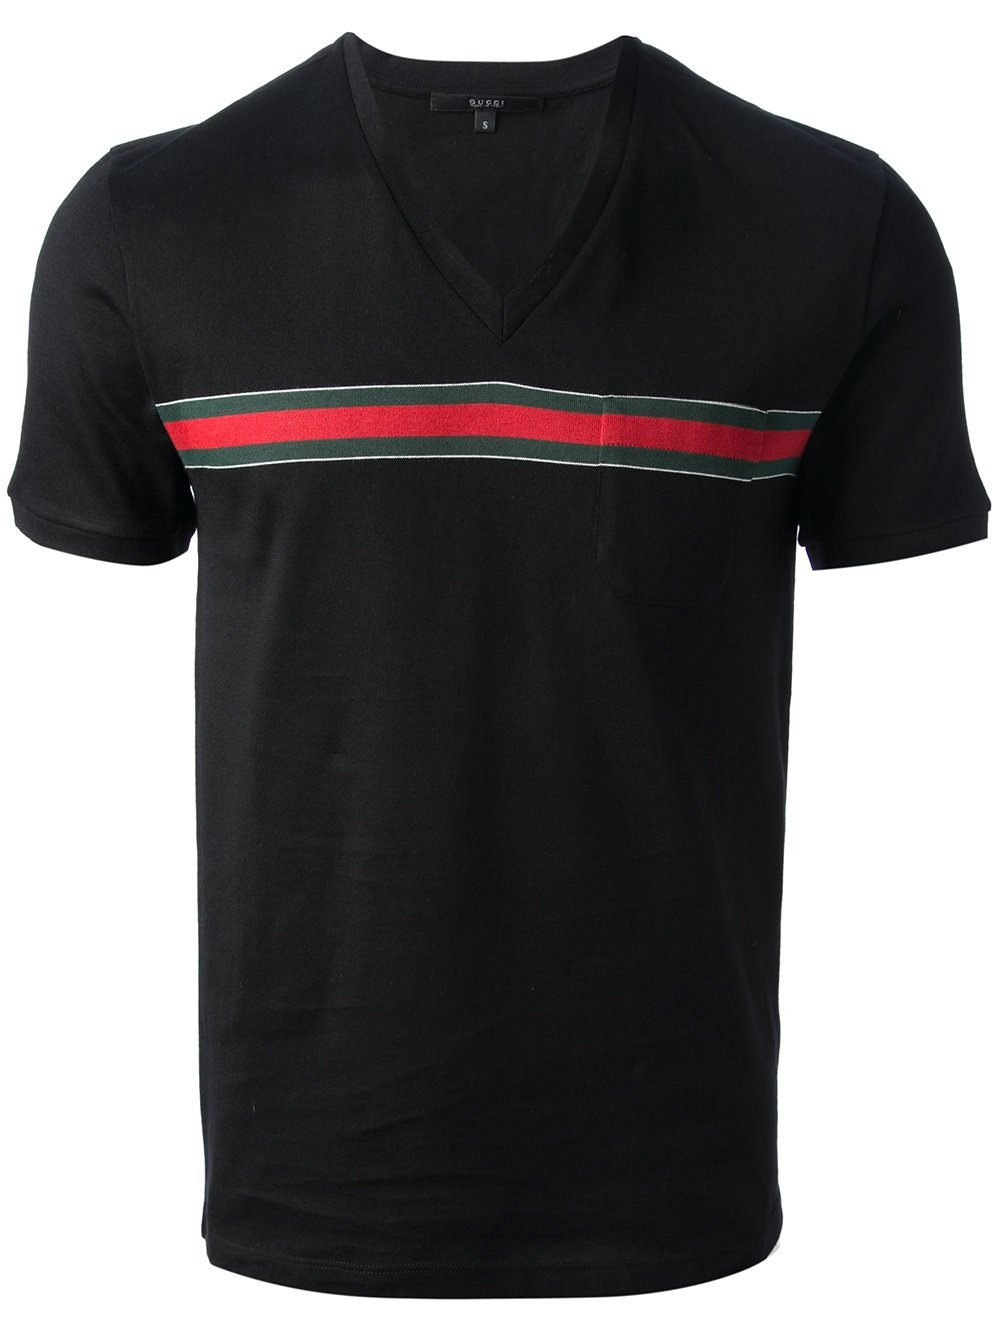 gucci vneck tshirt in black for men lyst. Black Bedroom Furniture Sets. Home Design Ideas